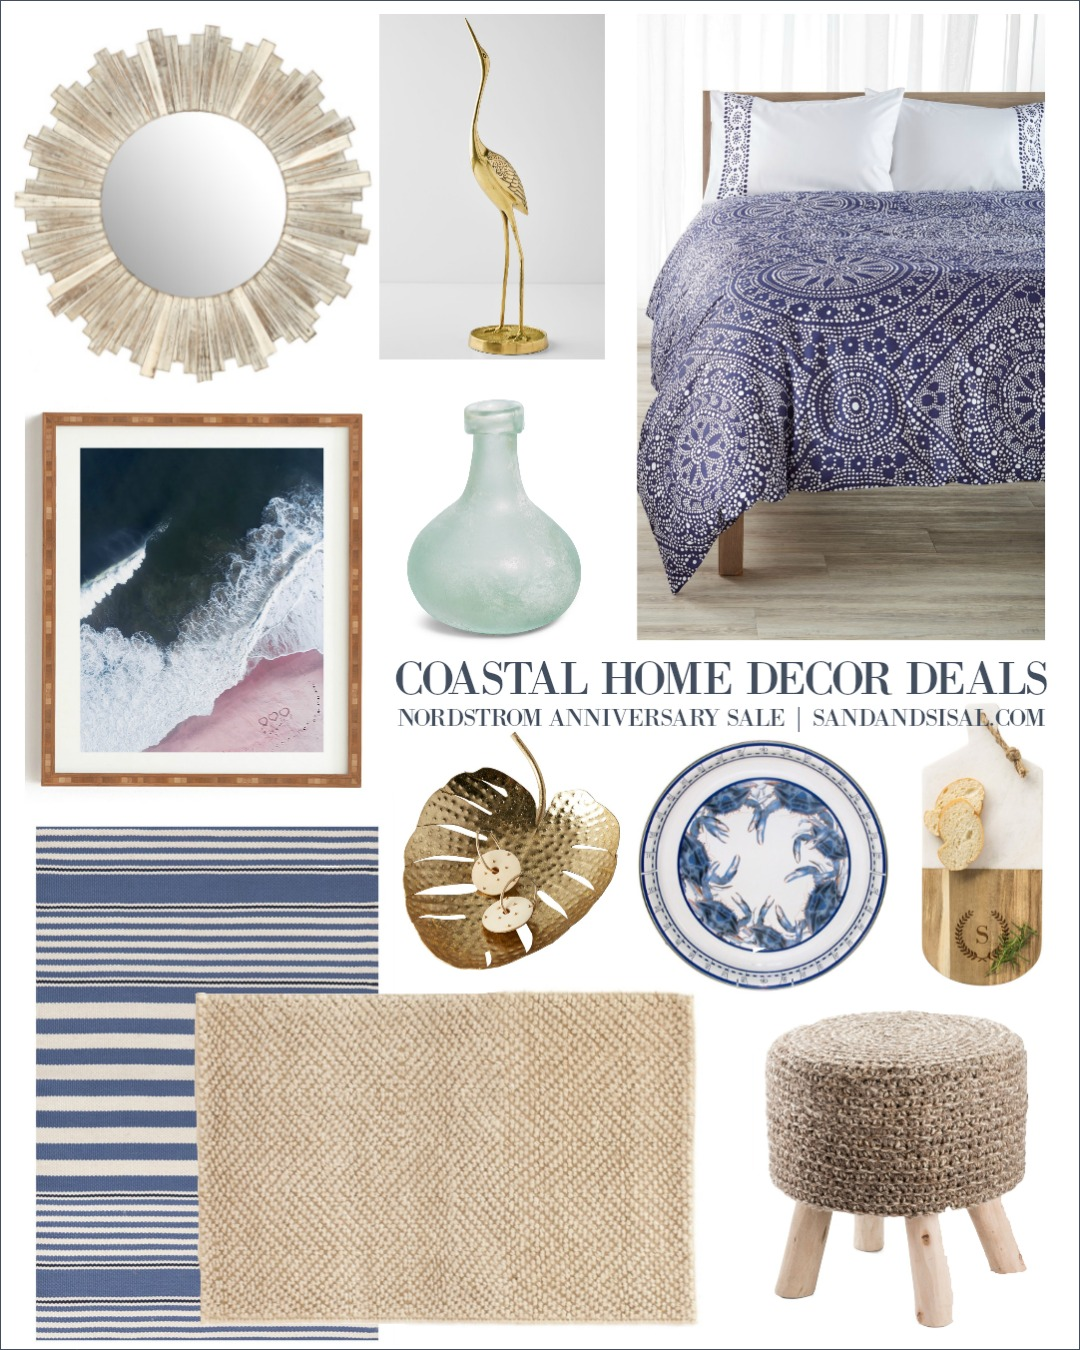 Coastal Home Decor Deals